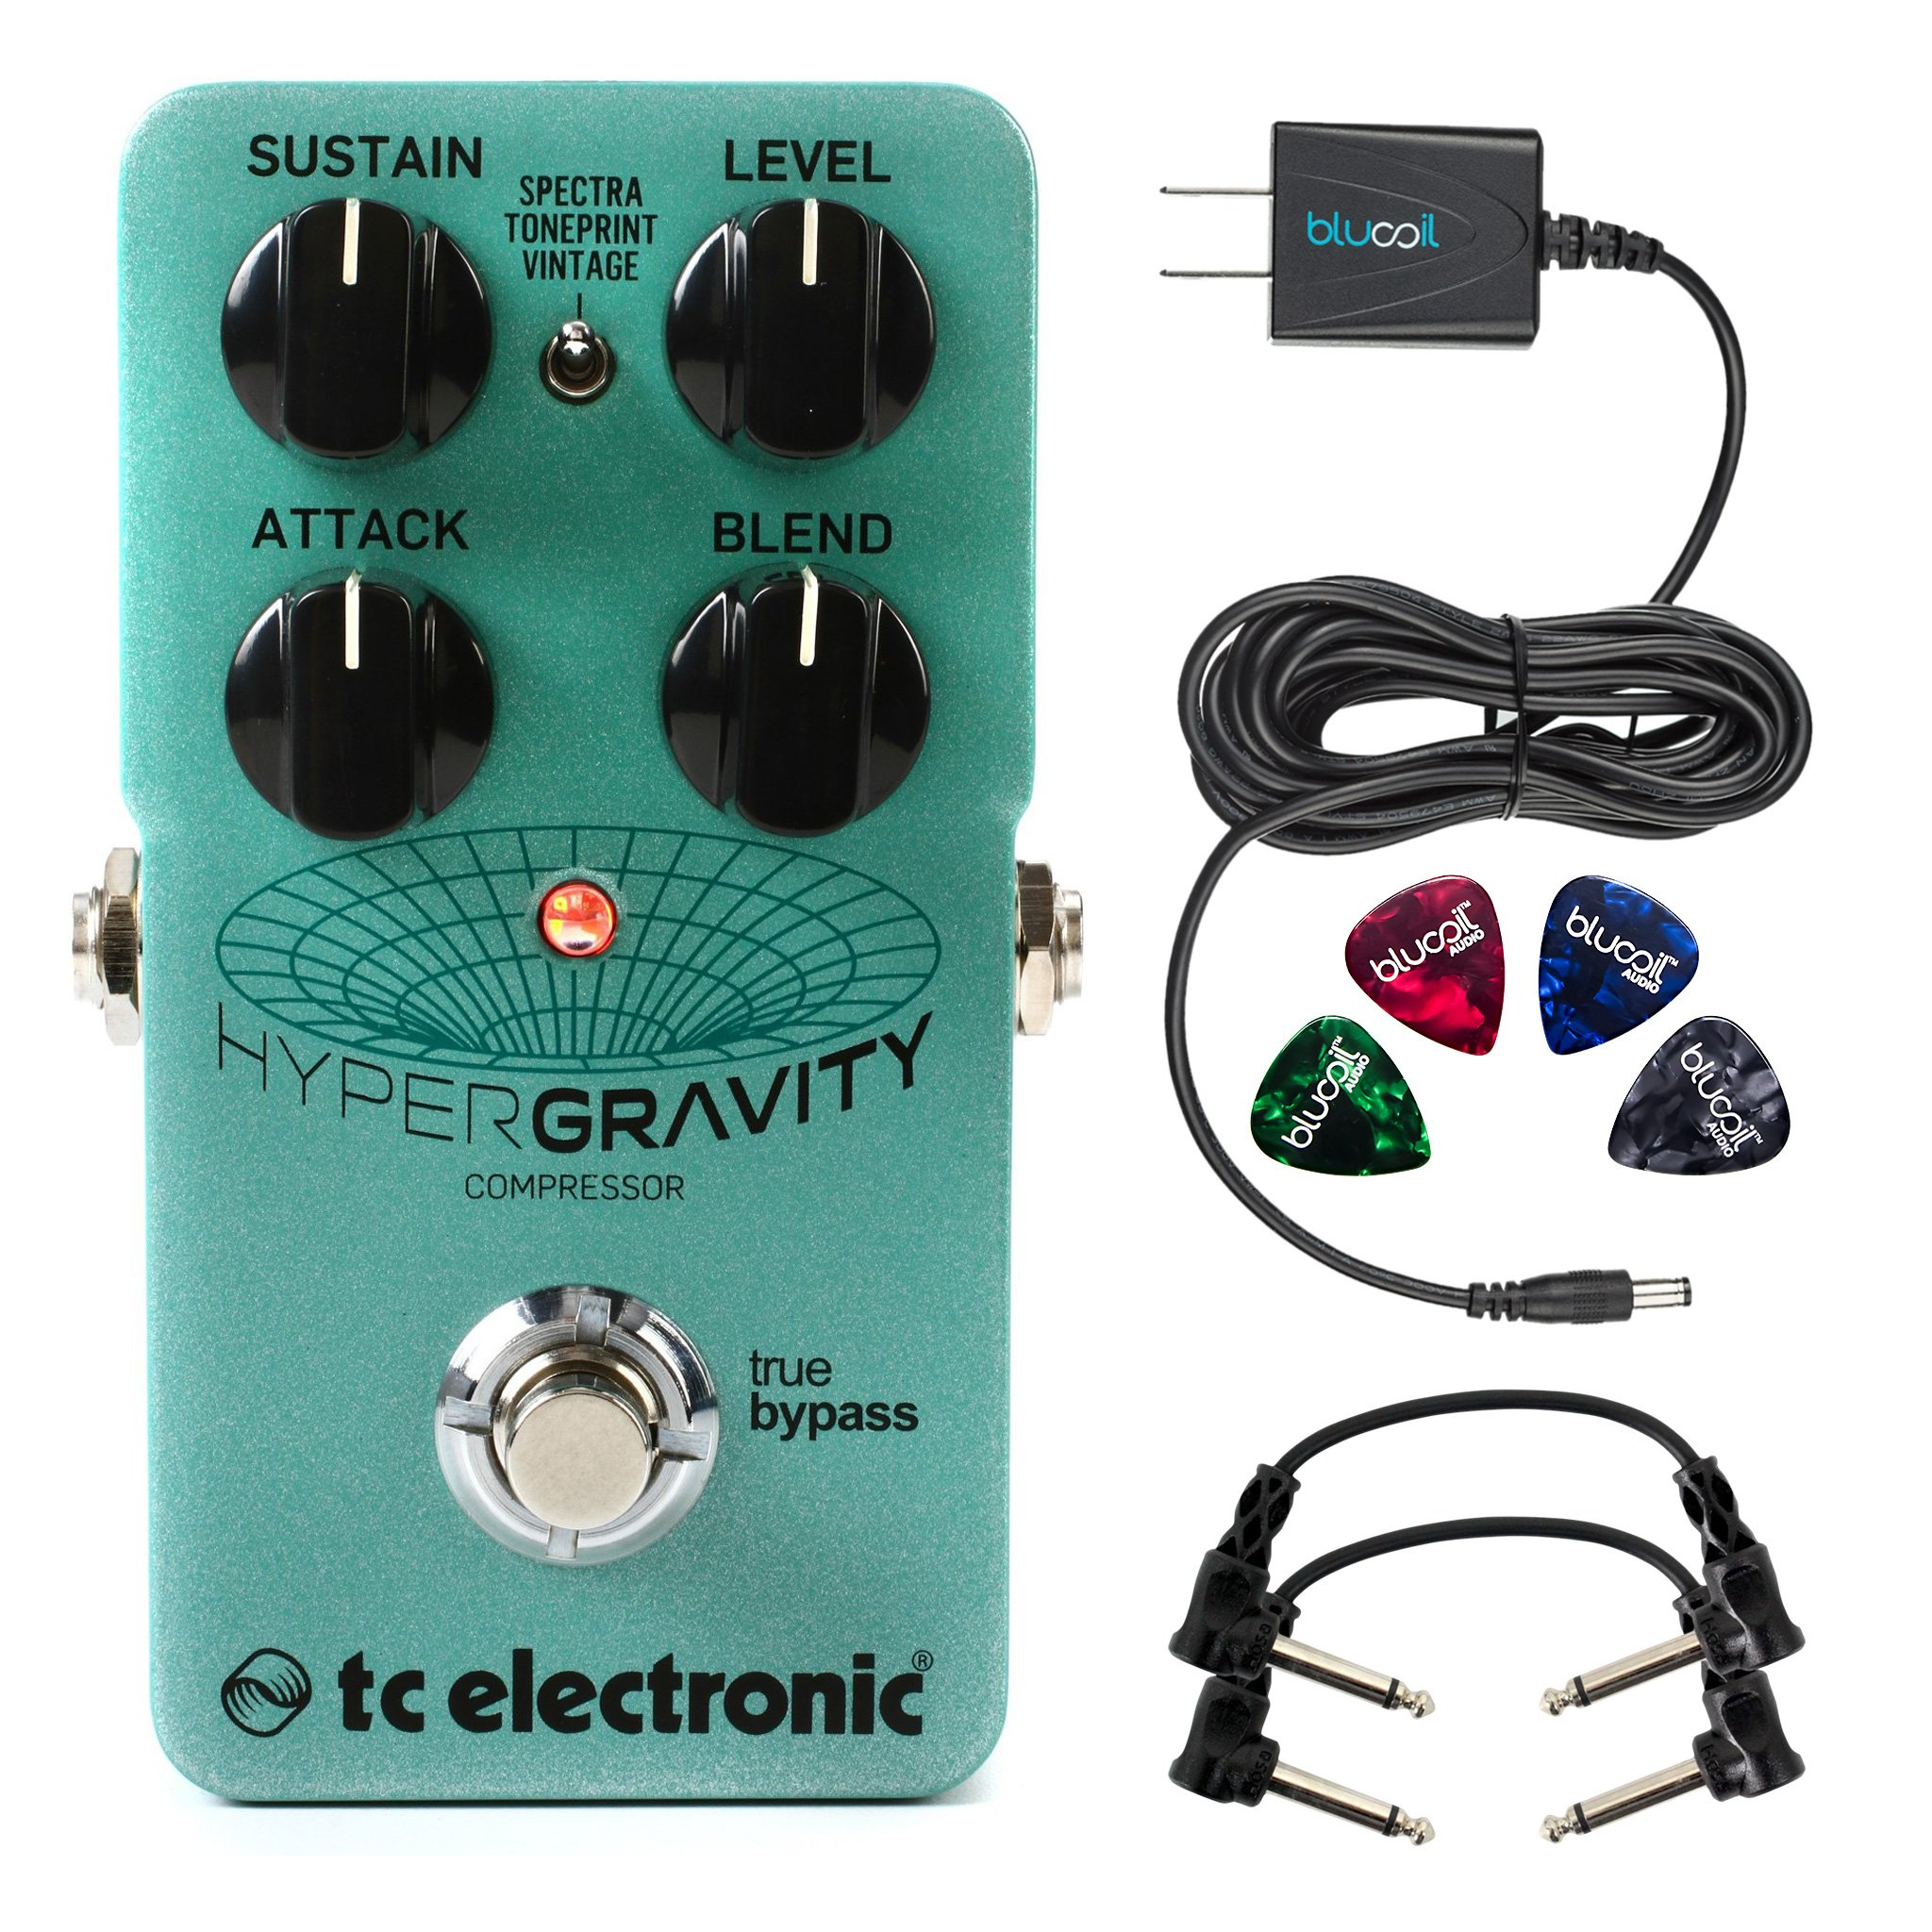 TC Electronic HyperGravity Compressor -INCLUDES- Blucoil Power Supply Slim AC/DC Adapter for 9V DC 670mA with US Plug, 2x Hosa CFS-106 Molded Right-Angle Guitar Patch Cables AND Blucoil Guitar Pick V2